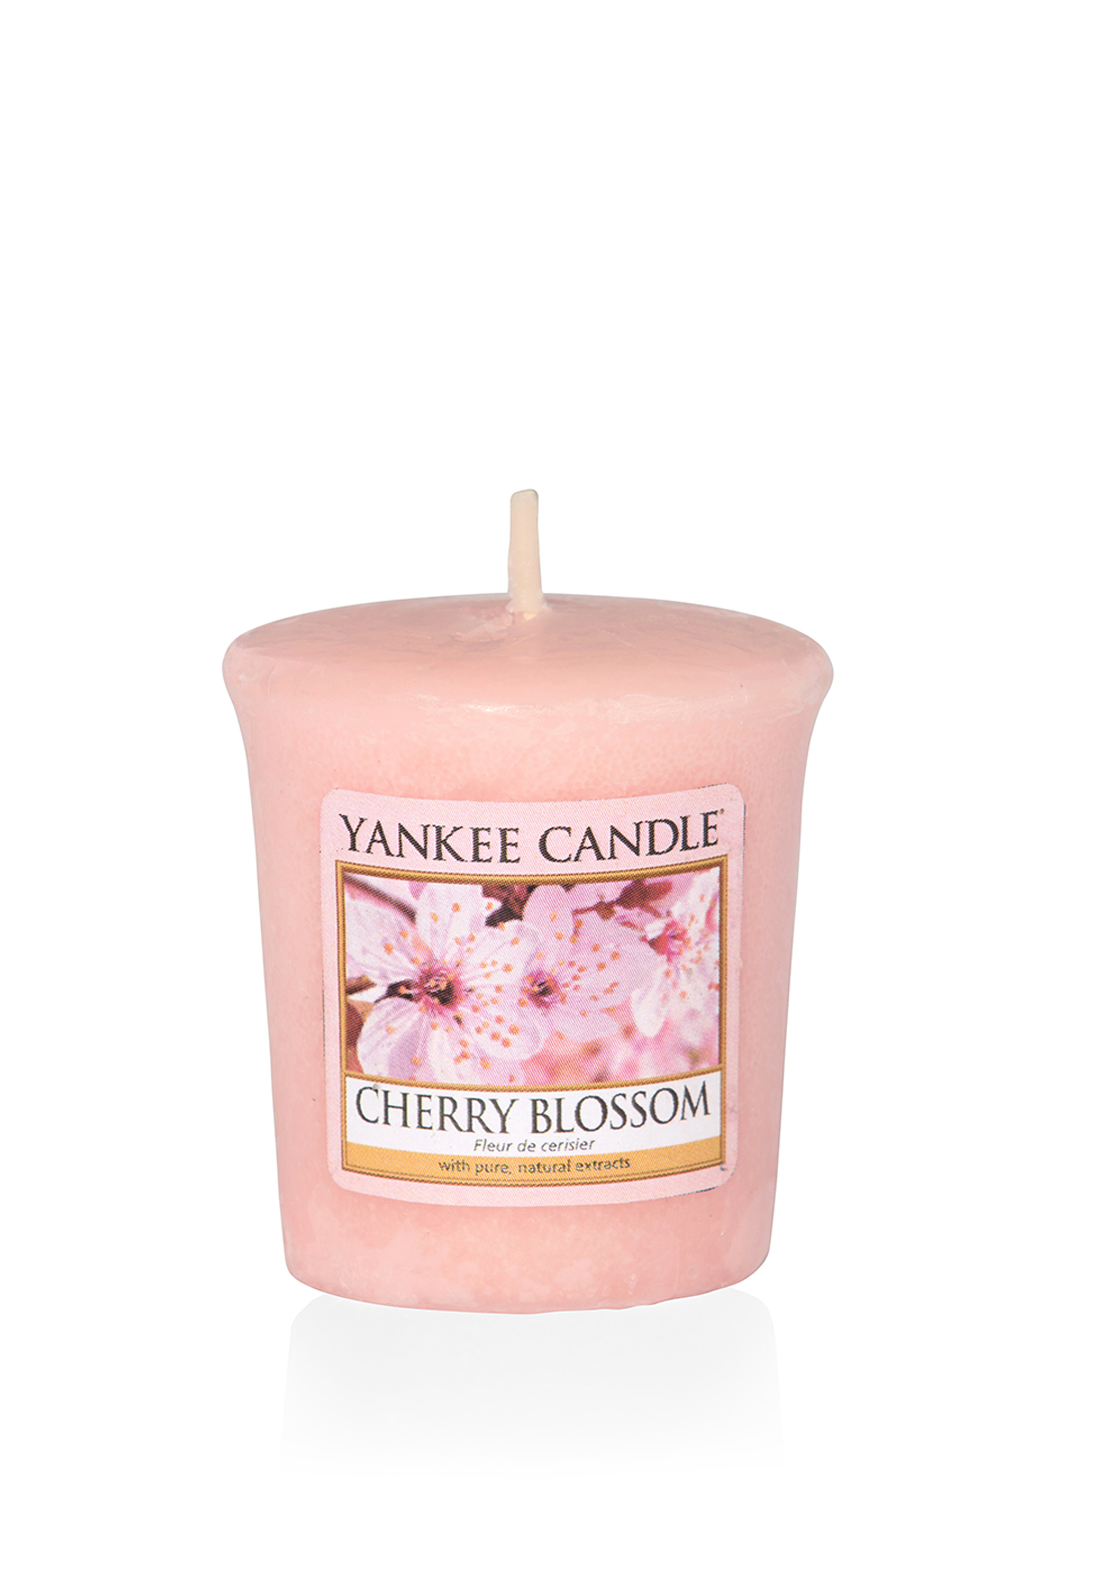 Yankee Candle Votive Candle, Cherry Blossom